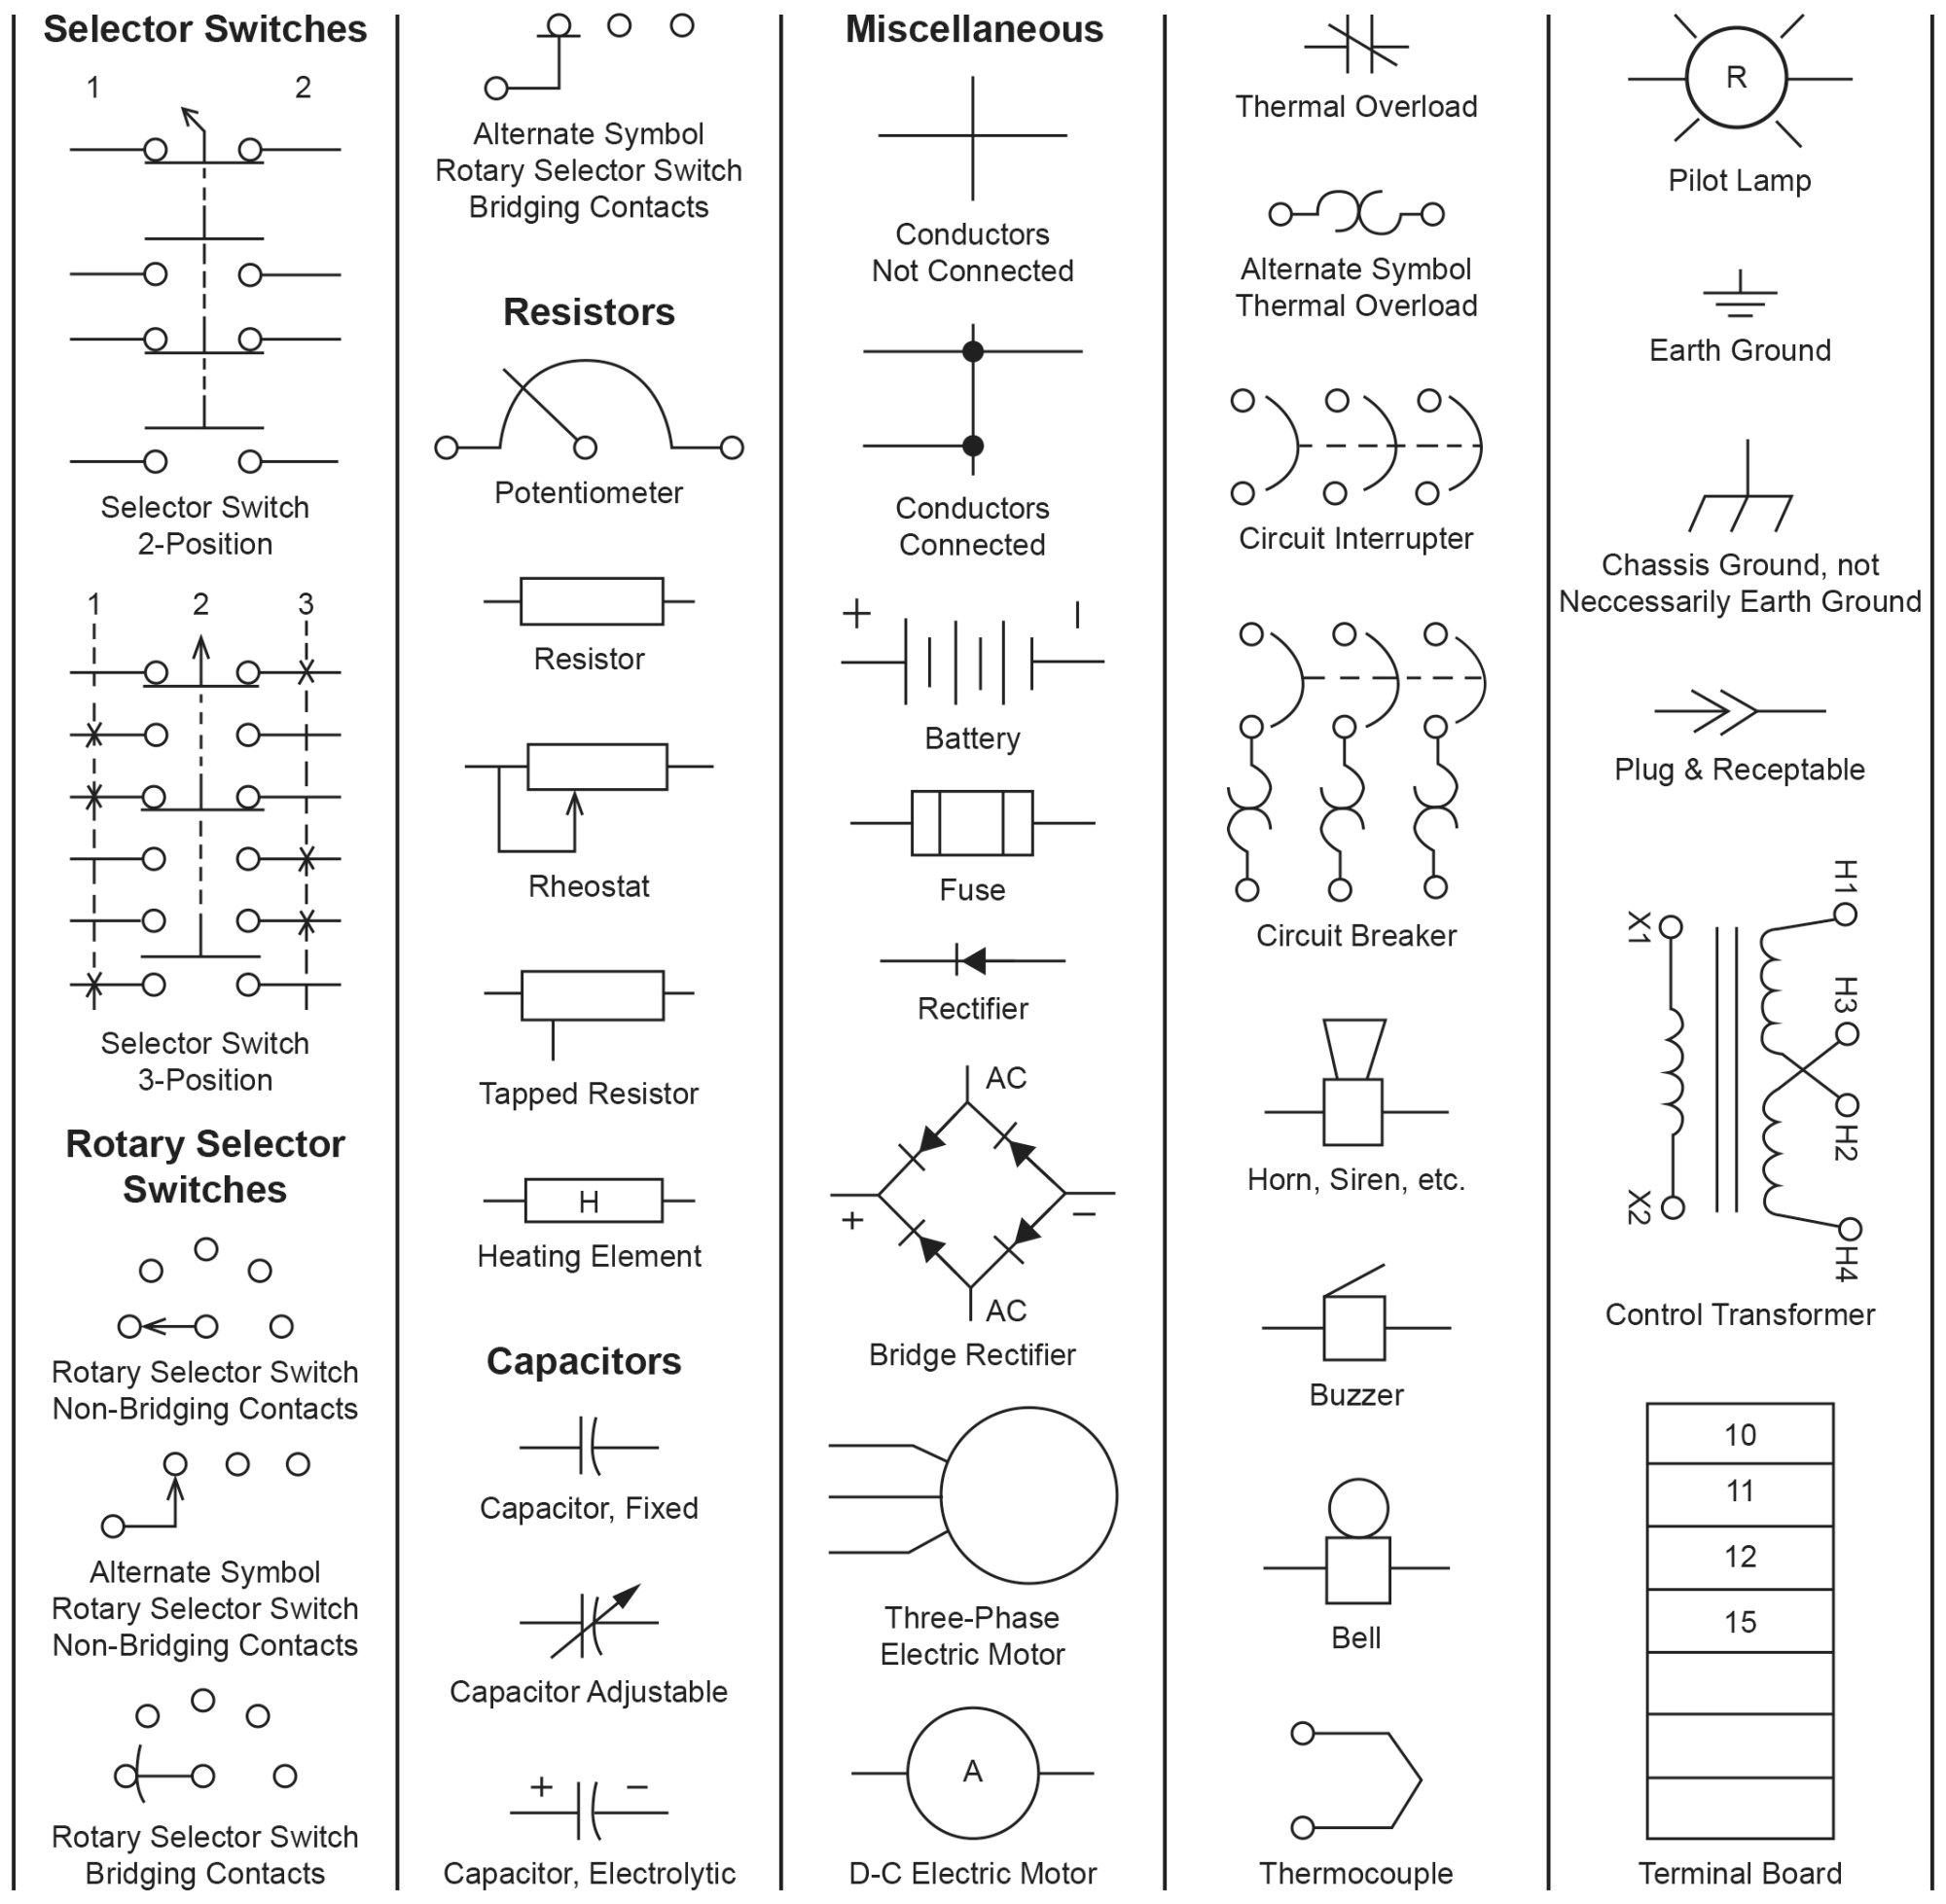 hight resolution of jic standard symbols for electrical ladder diagrams womack machine ladder logic symbols download ladder diagram symbols